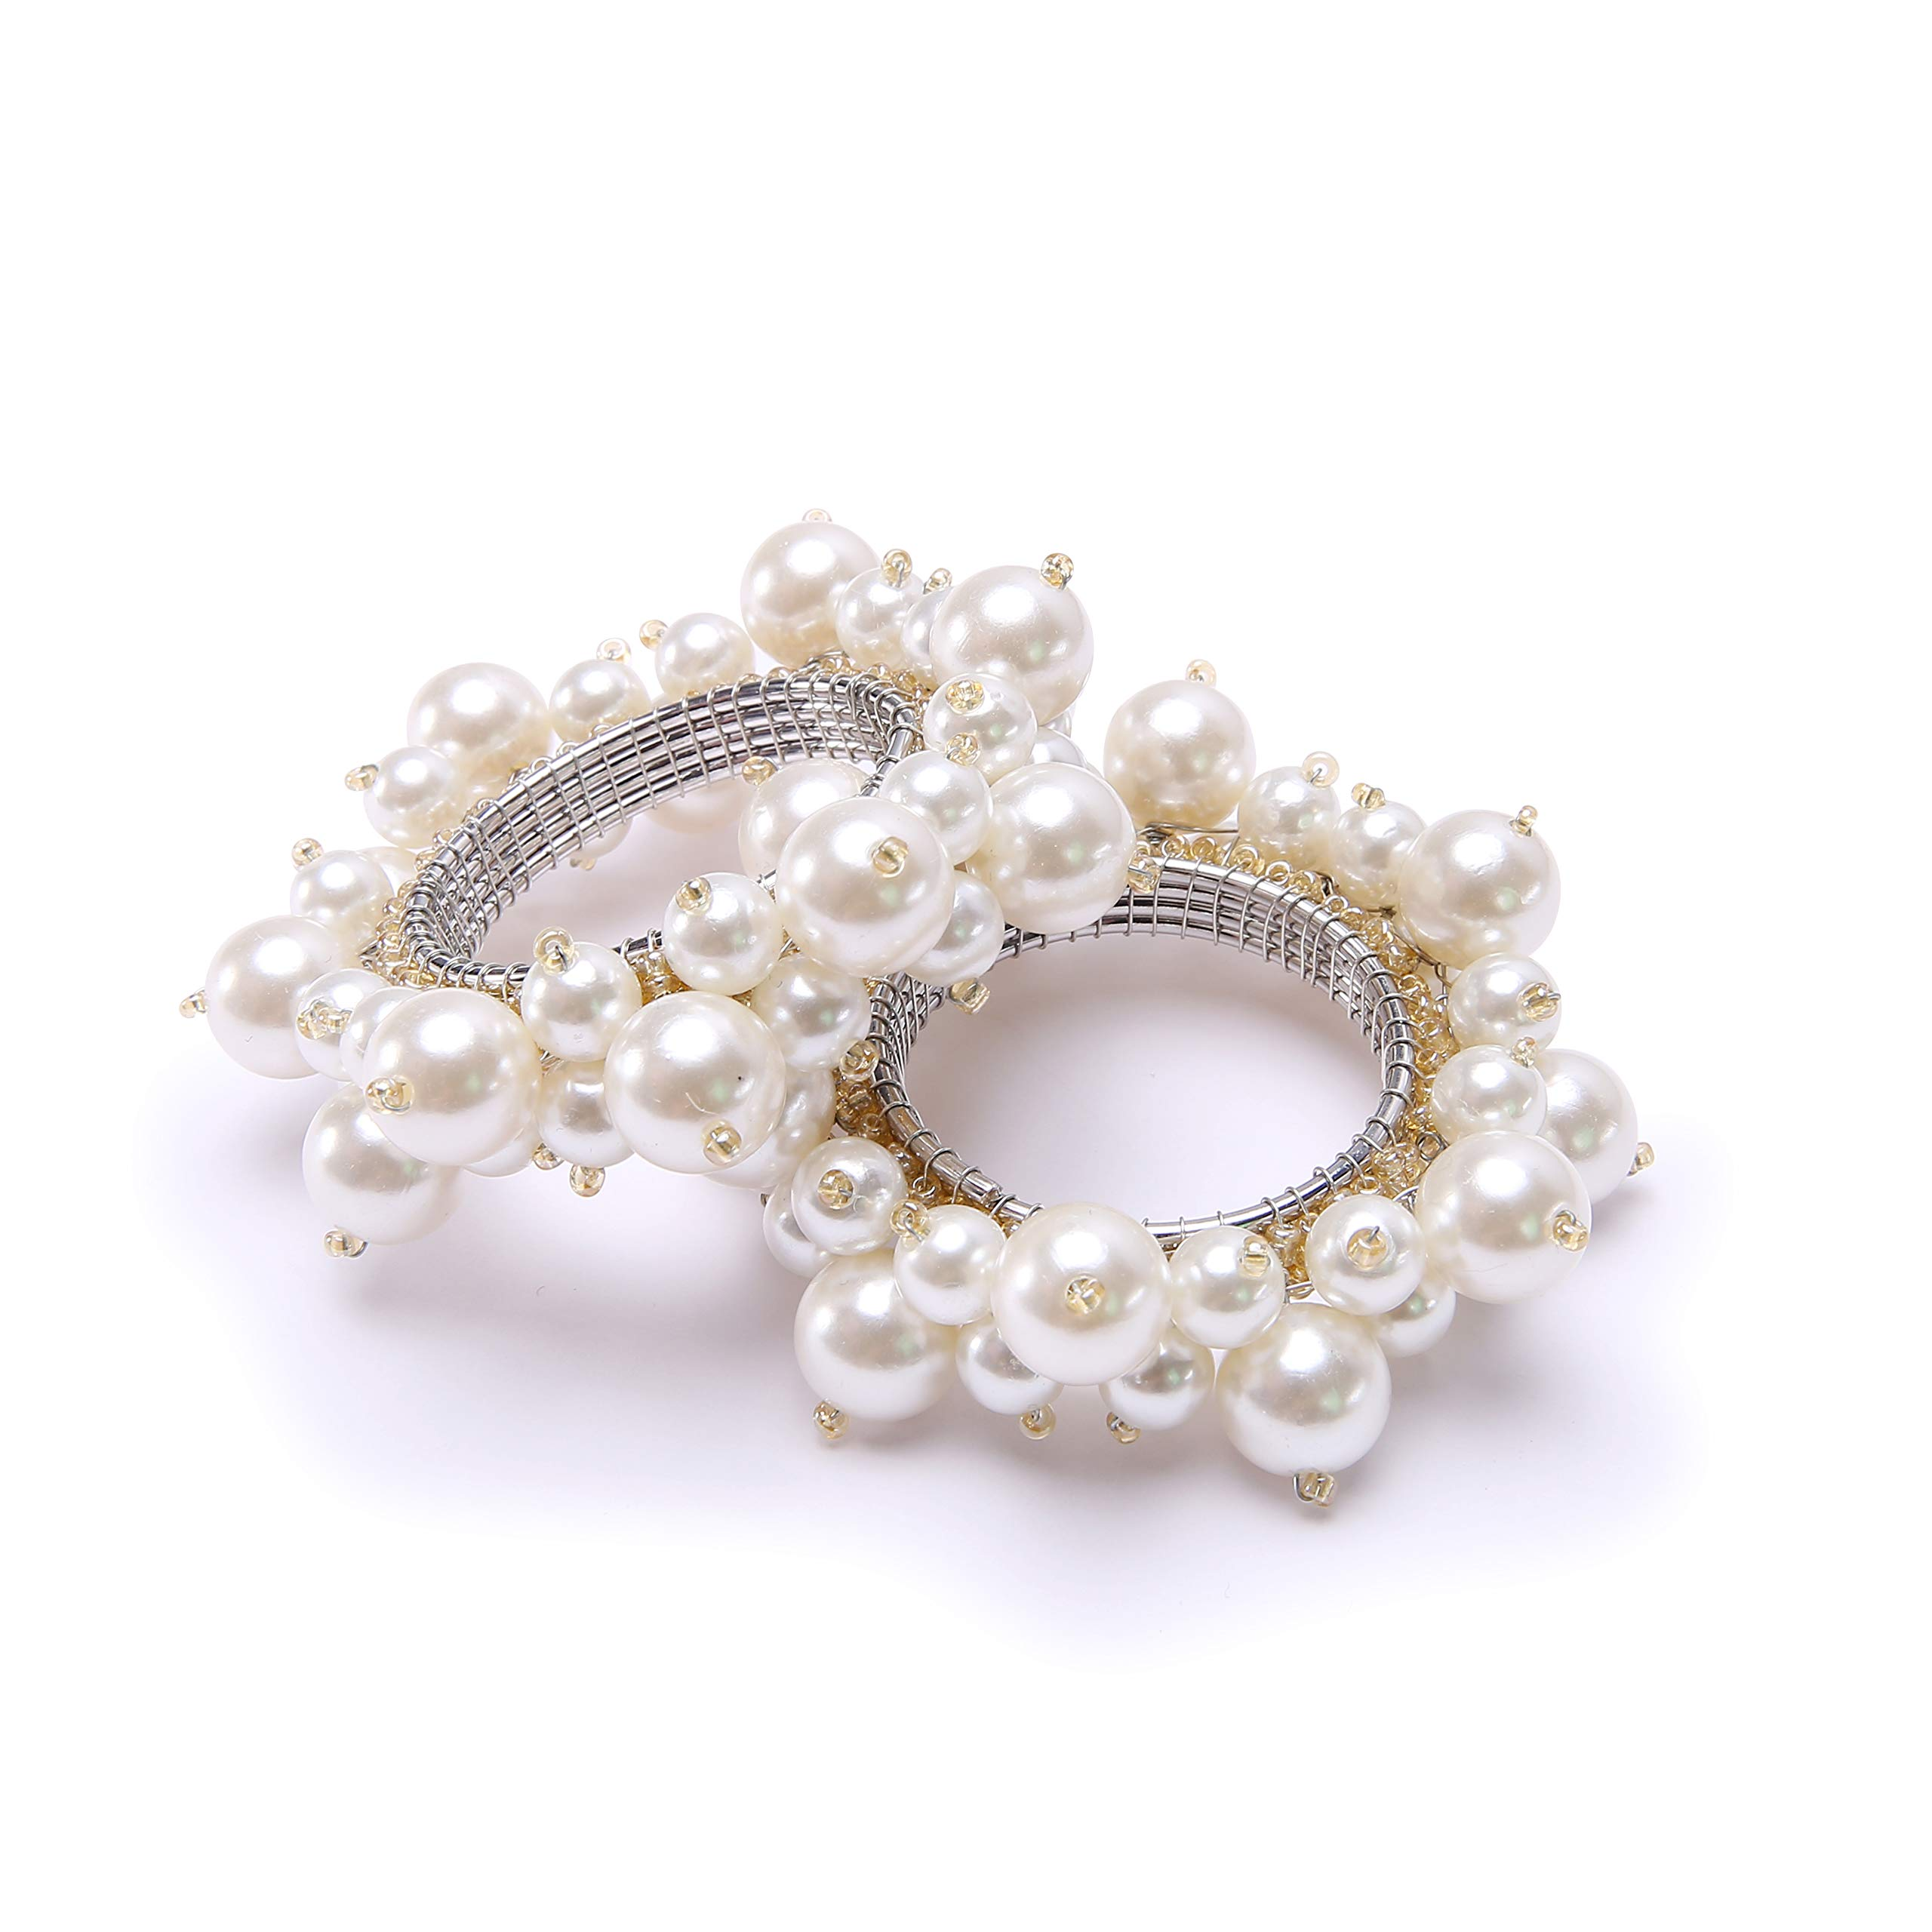 QUEENSHOW Handmade Pearl Napkin Rings Set with Solid White Stainless Steel Metal Rings, 4 pics